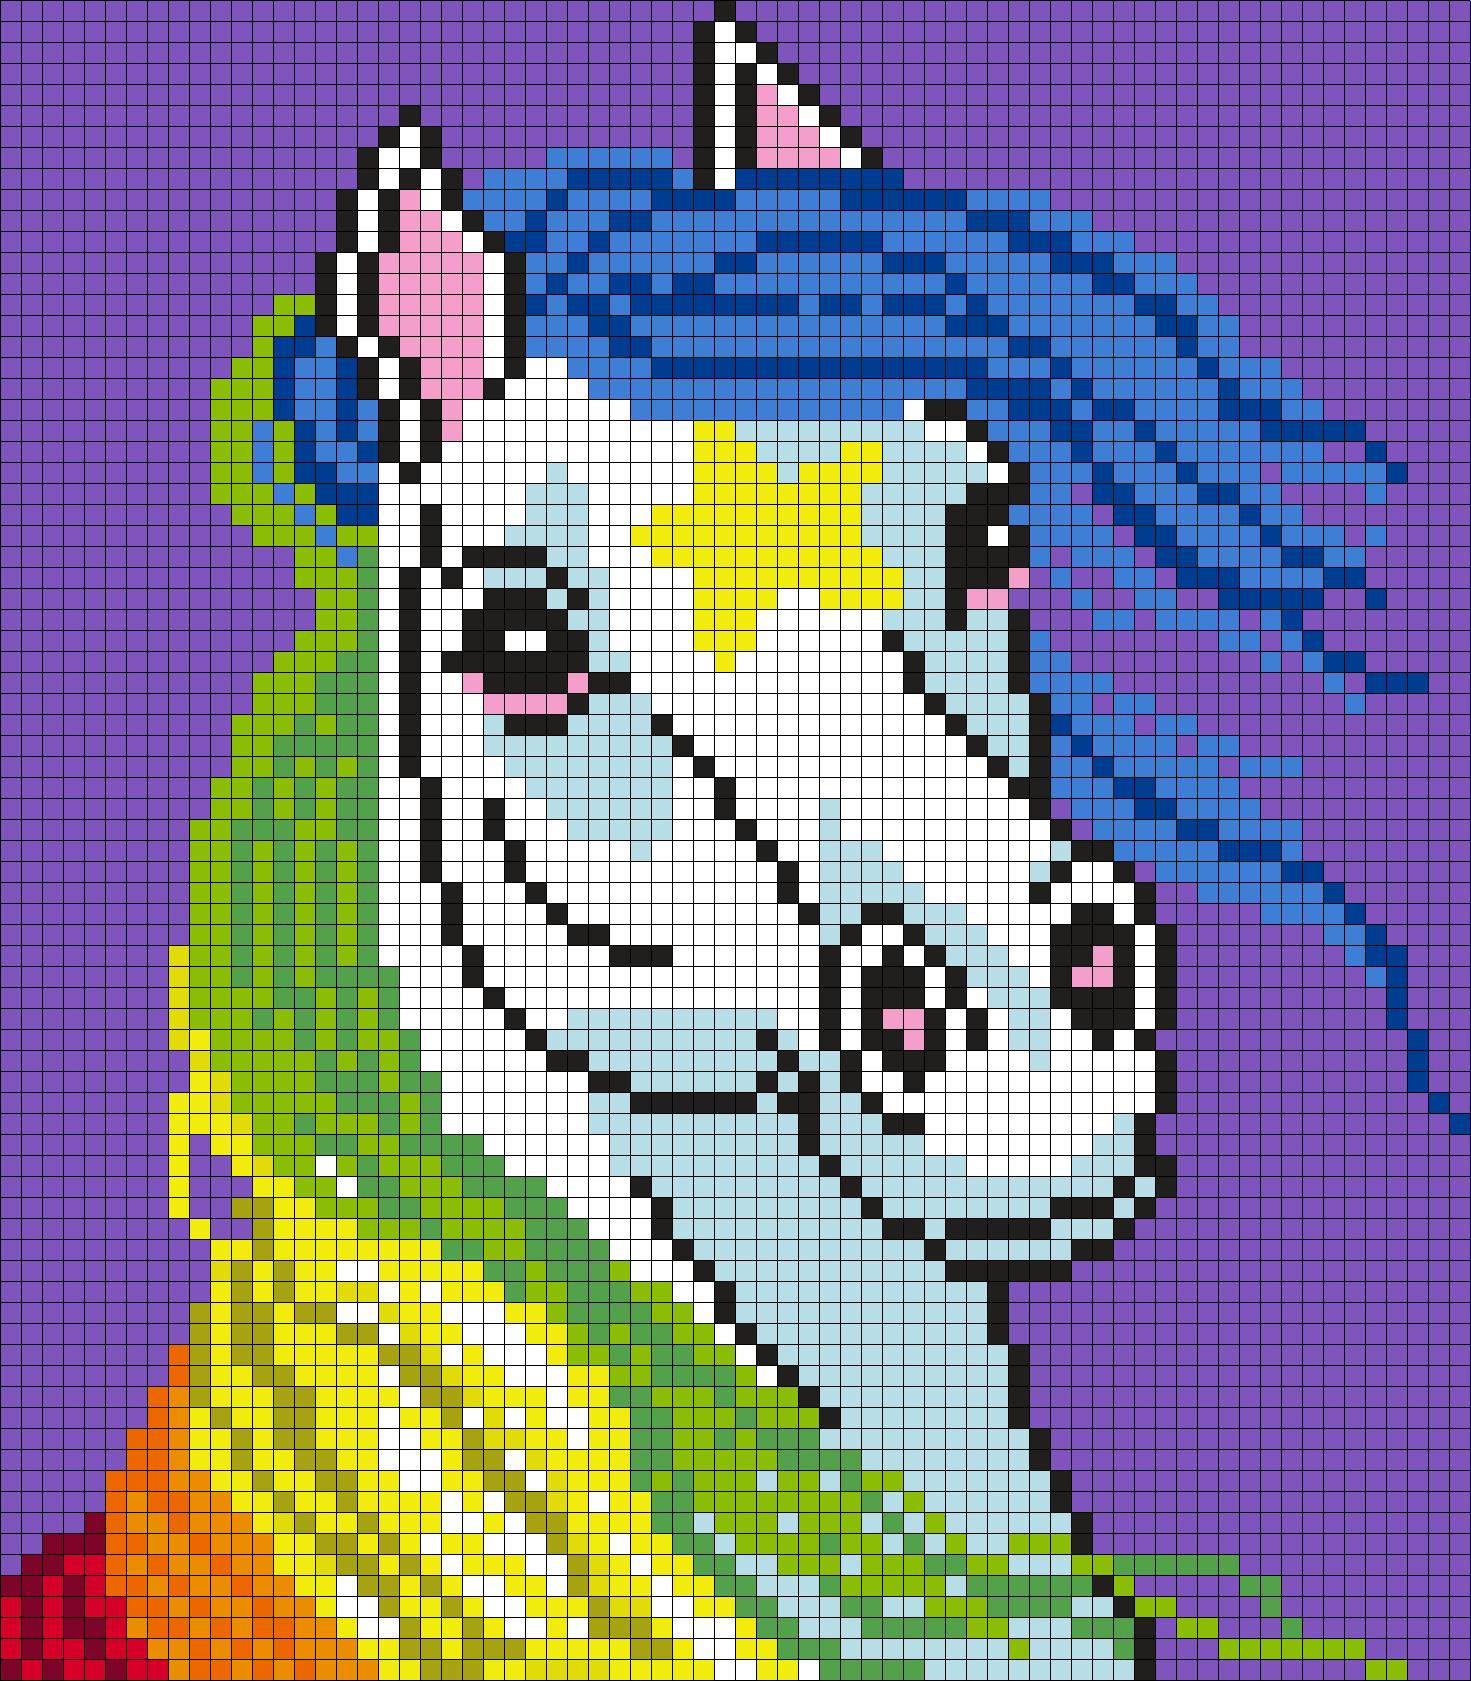 Starlite From Rainbow Brite (Square)